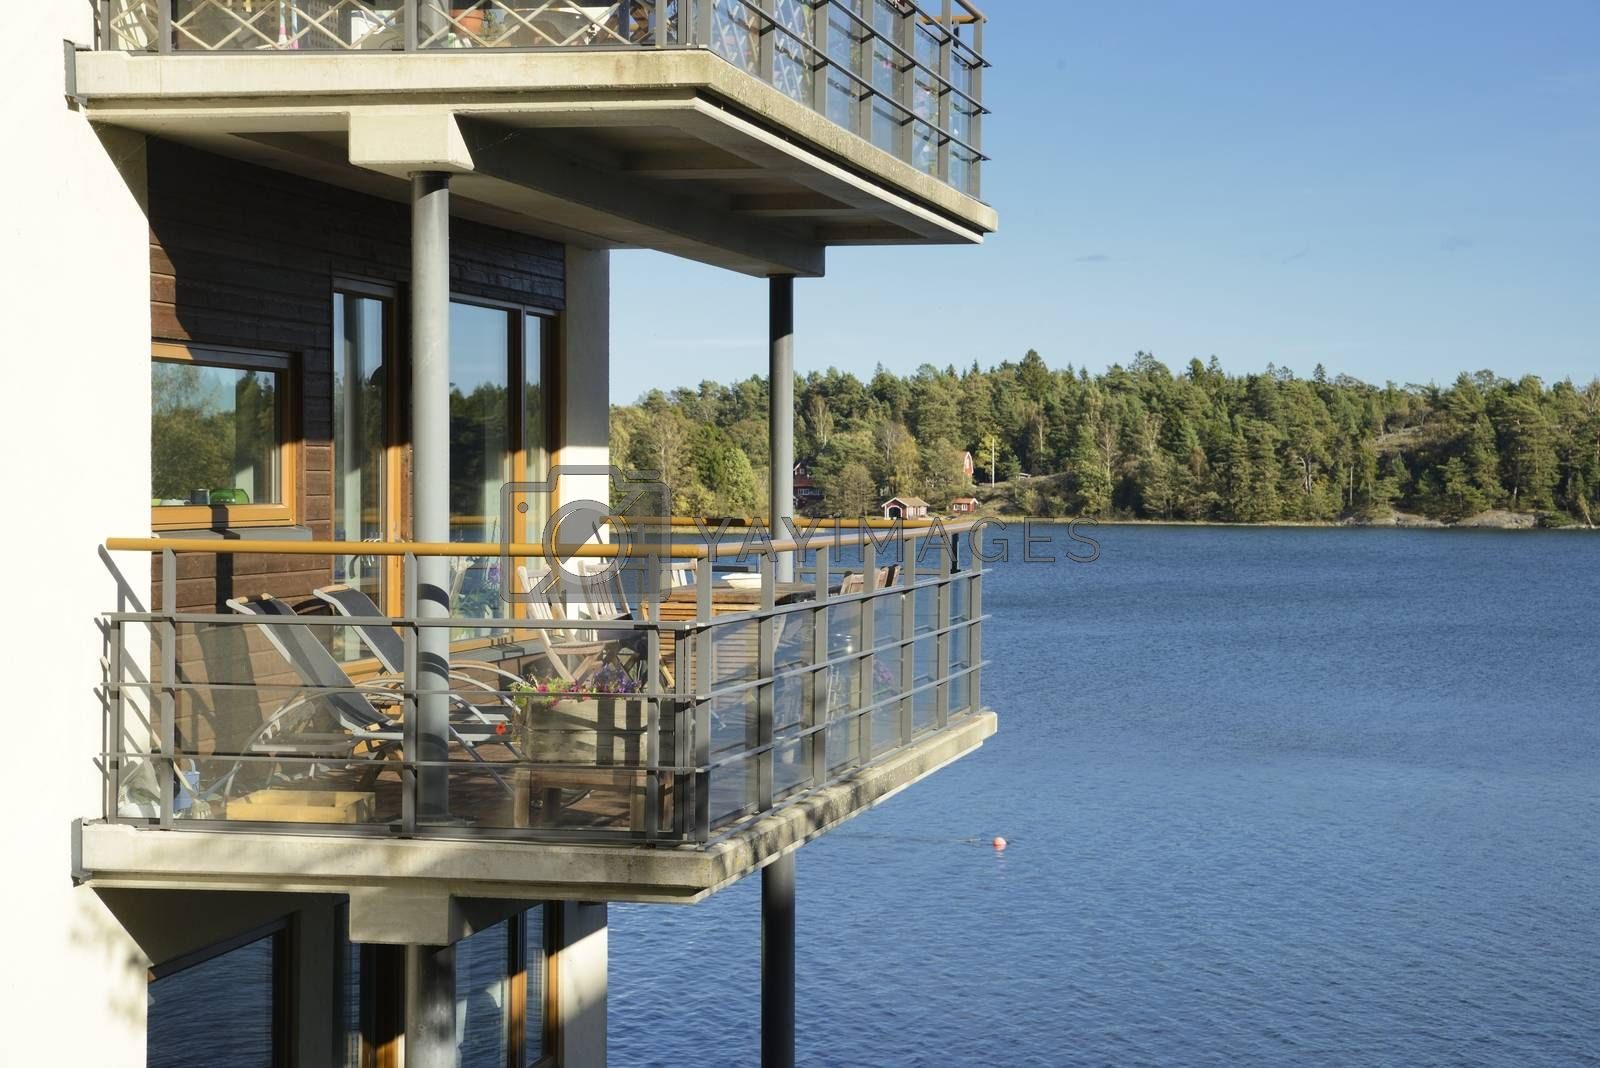 Balconies on the side of a building with lake view.